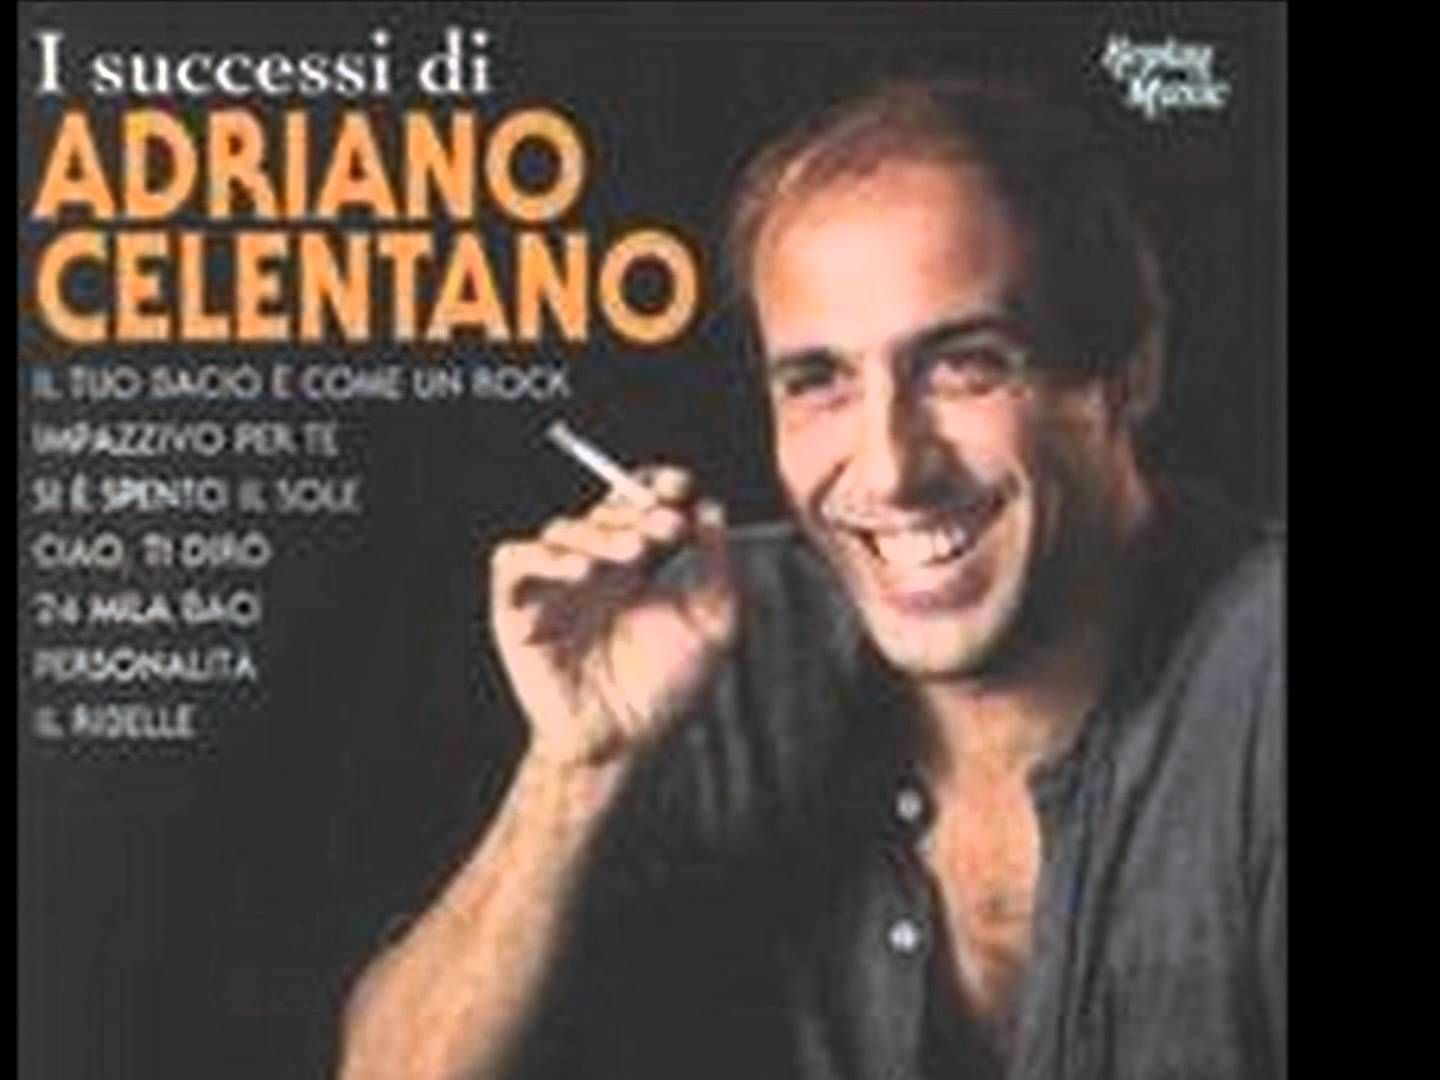 Adriano Celentano Pregherò Youtube Music Songs Songs